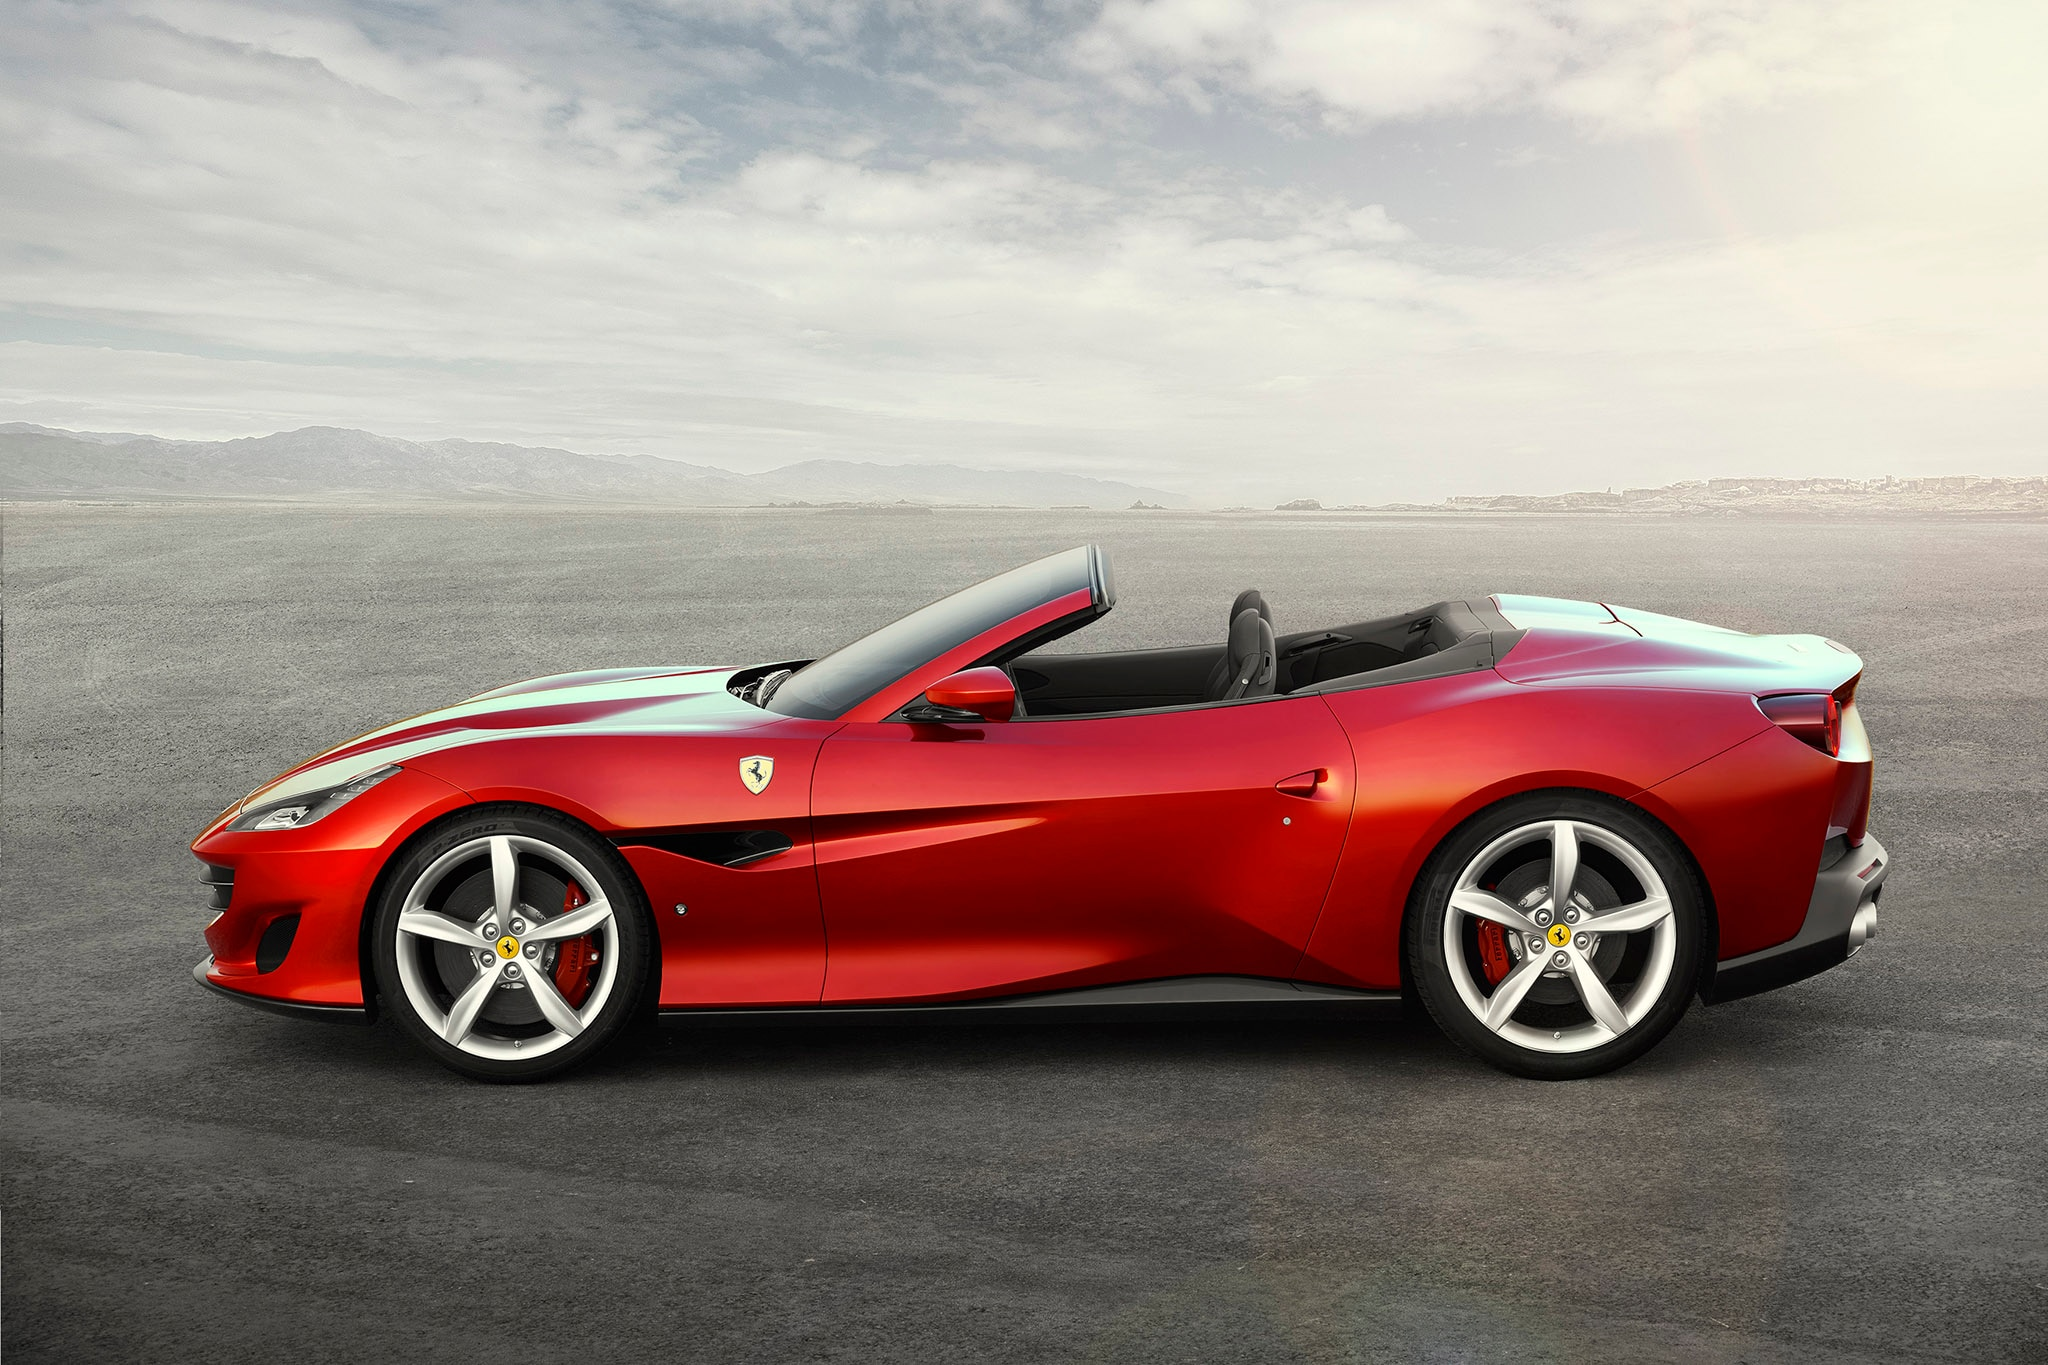 2018 ferrari portofino.  ferrari where the portofino  with 2018 ferrari portofino r